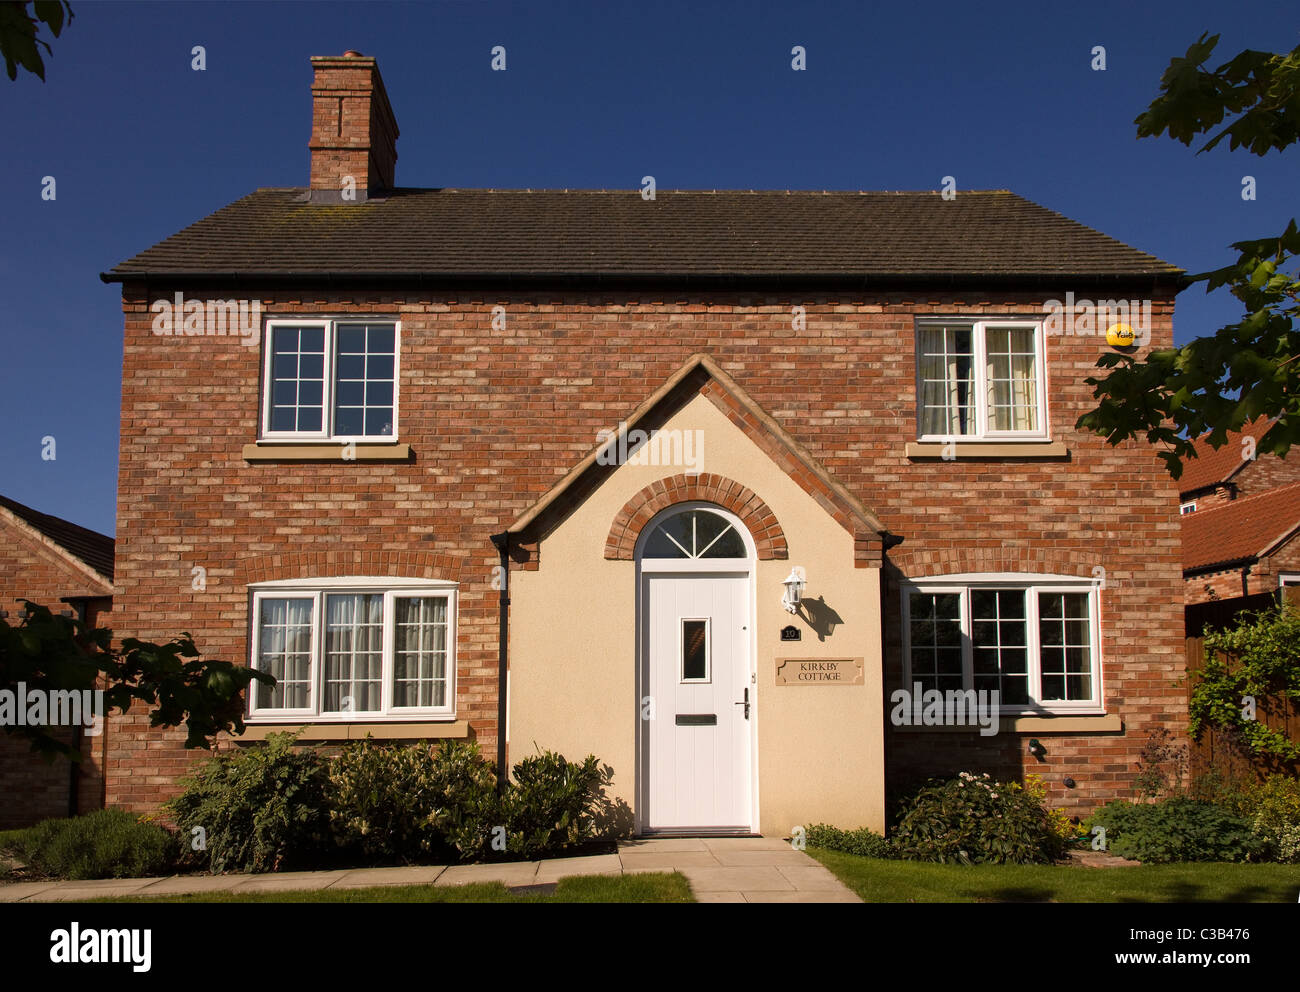 Newbuild Home In Traditional English Cottage Style, Built